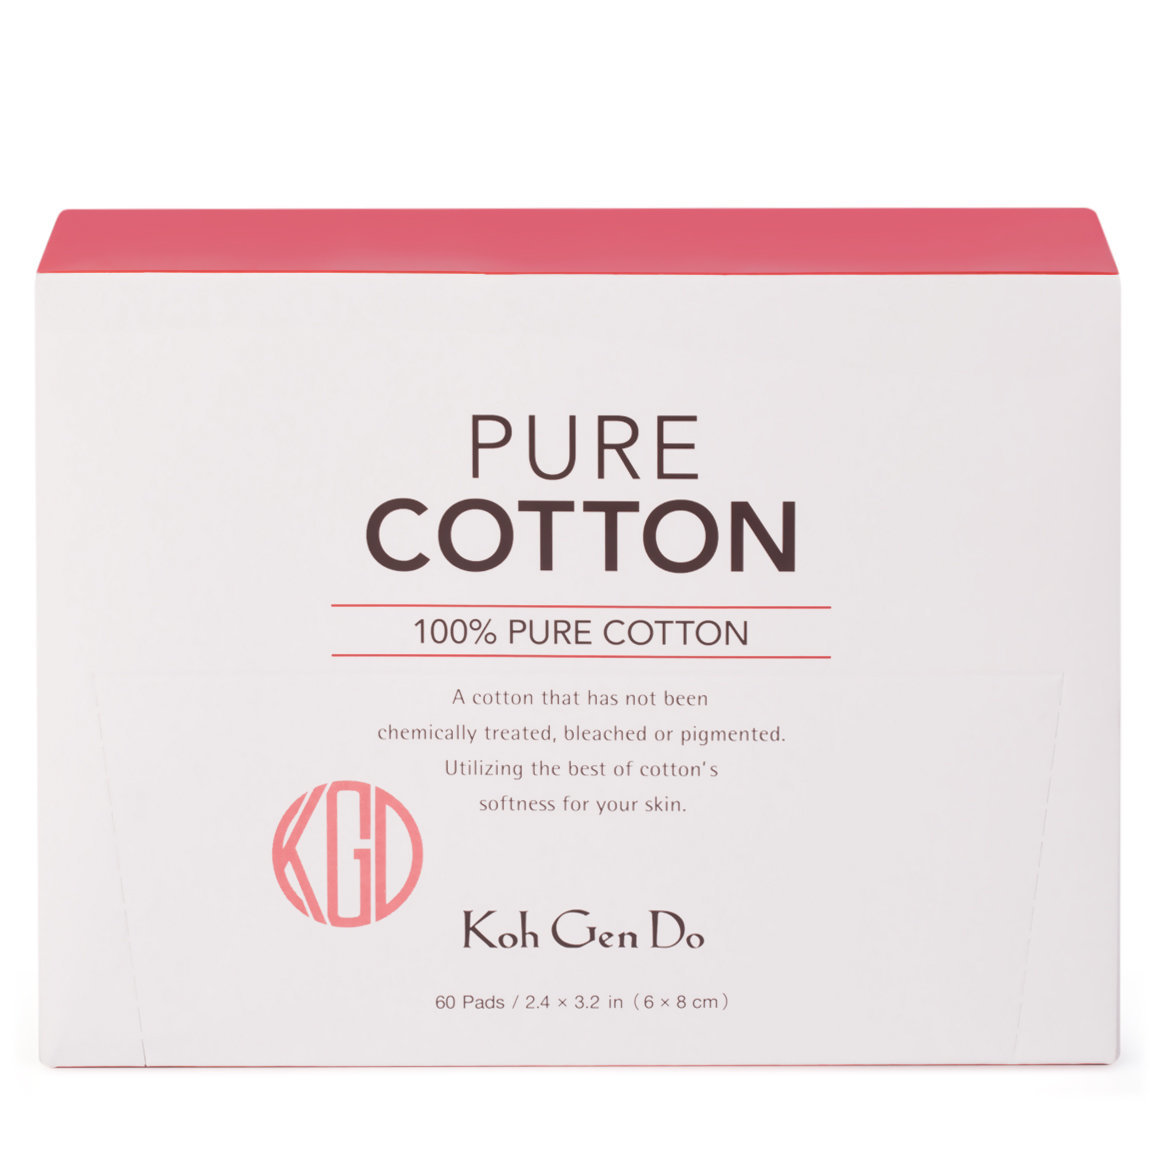 Koh Gen Do Pure Cotton product swatch.